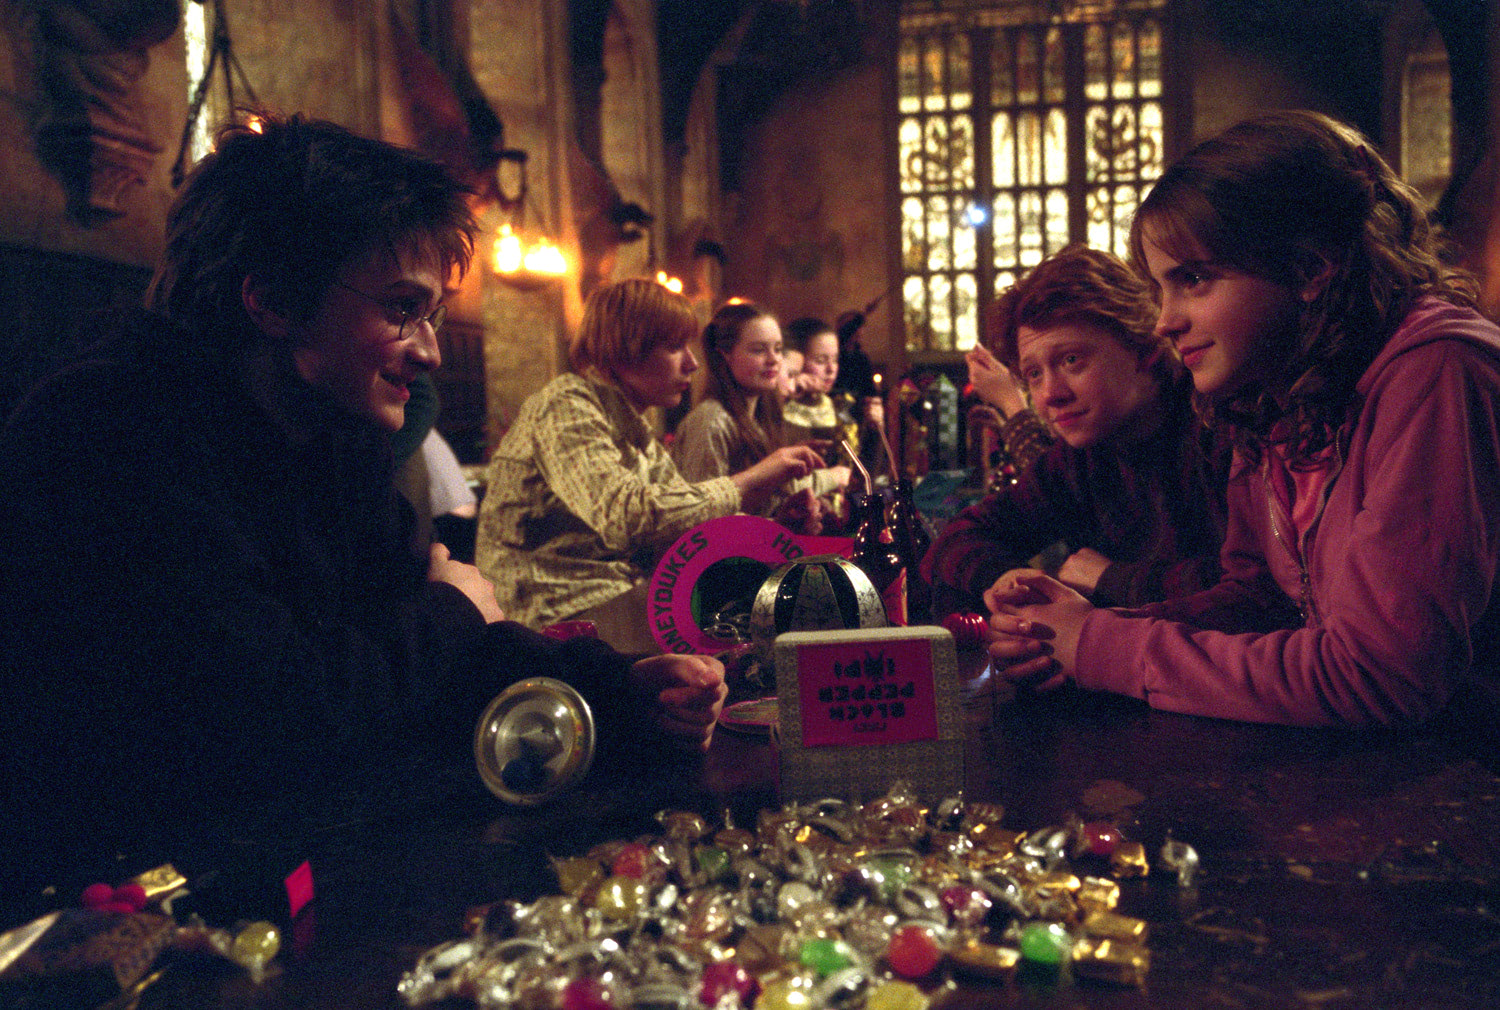 Sweets in the Great Hall